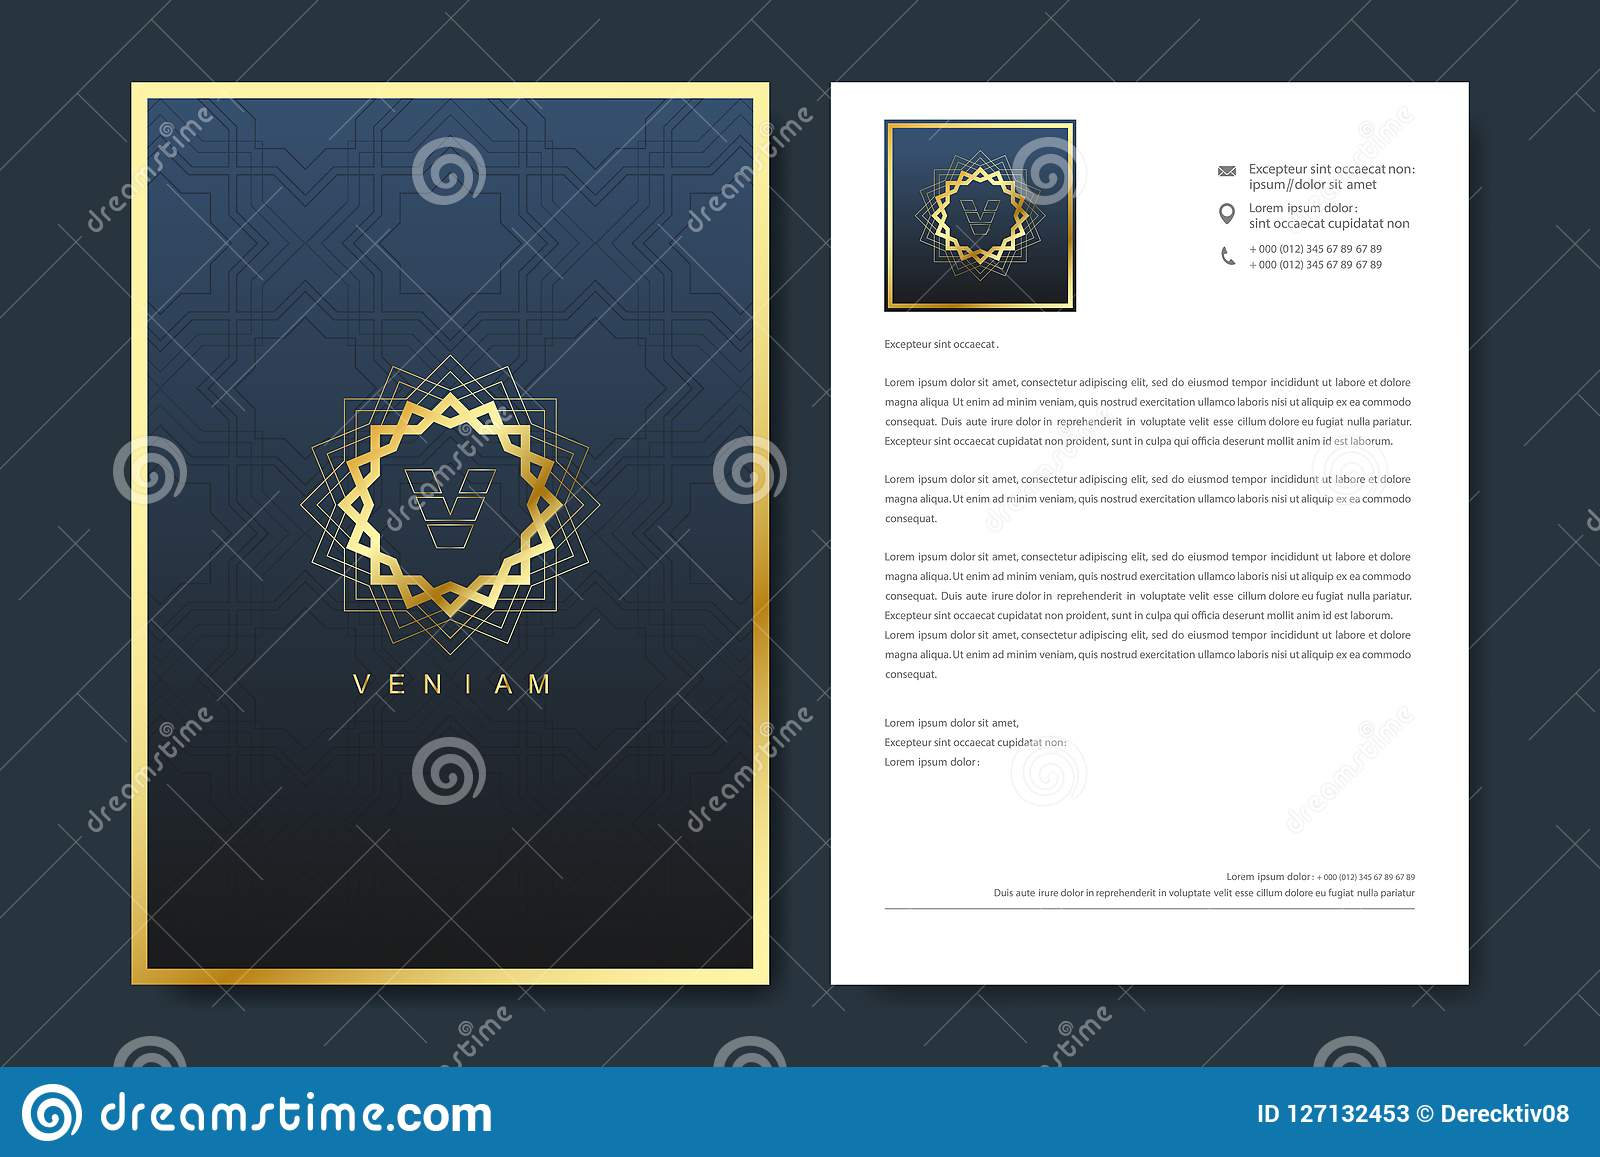 Elegant letterhead template design in minimalist style with Logo. Golden luxury business design for cover, banner